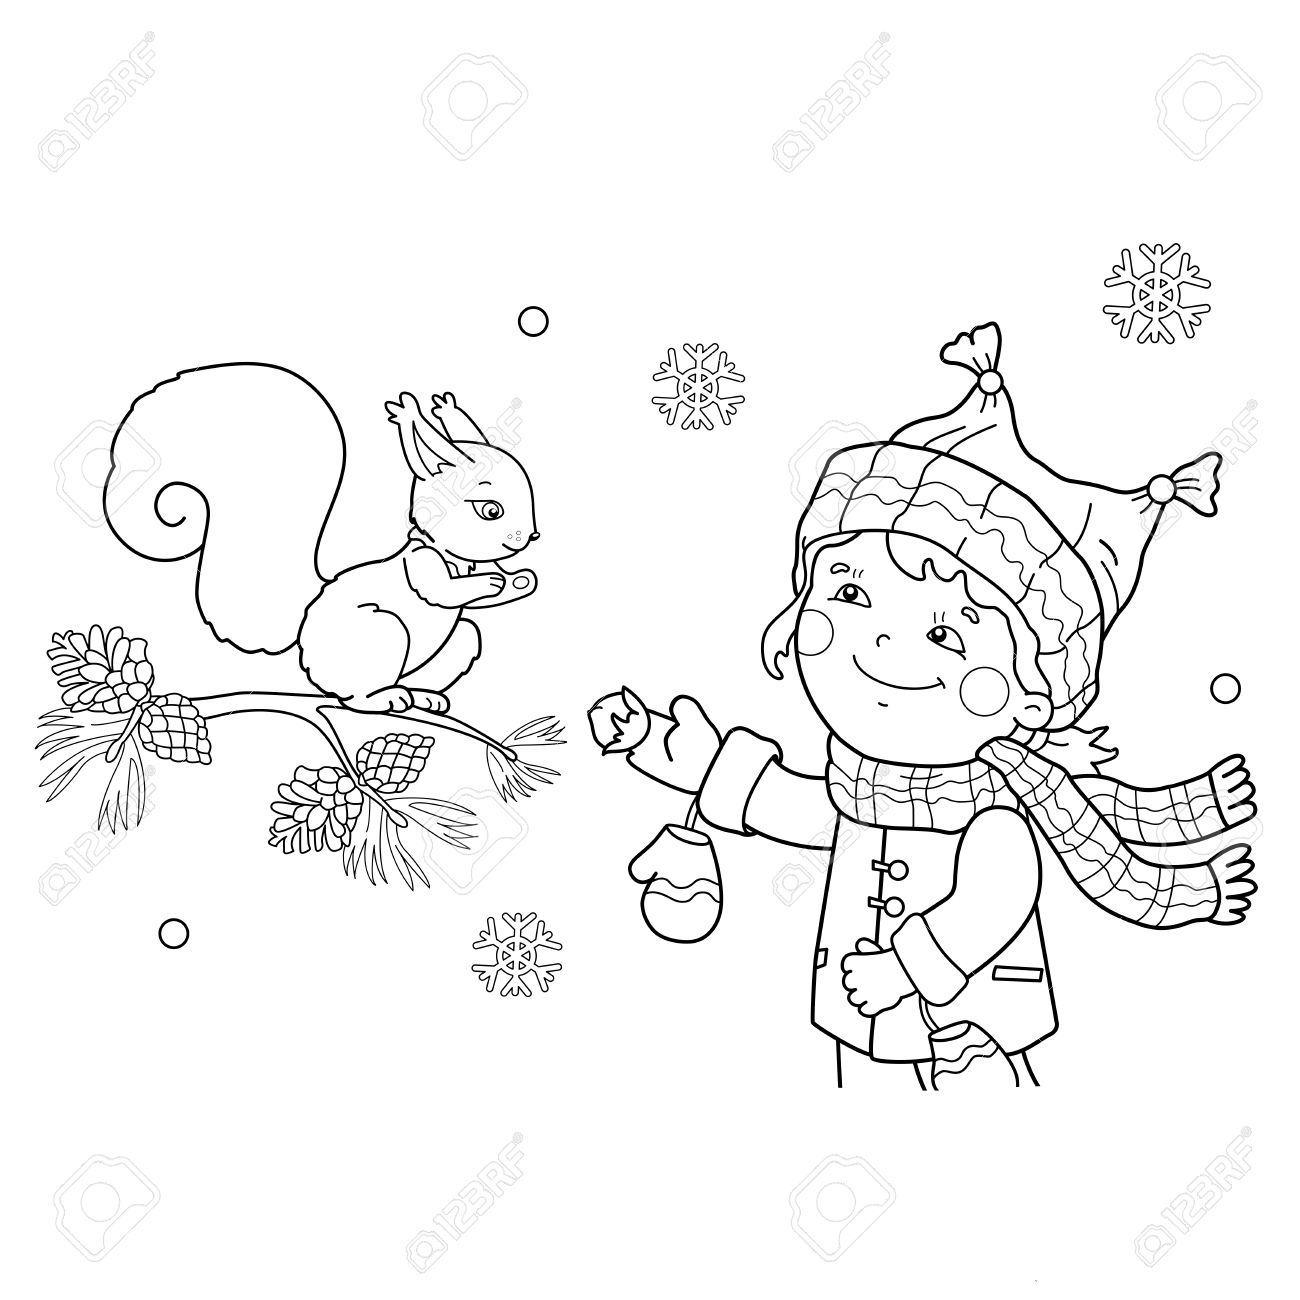 Coloring Page Outline Of Girl Feeding A Squirrel. Winter. Wild Animals.  Coloring Book